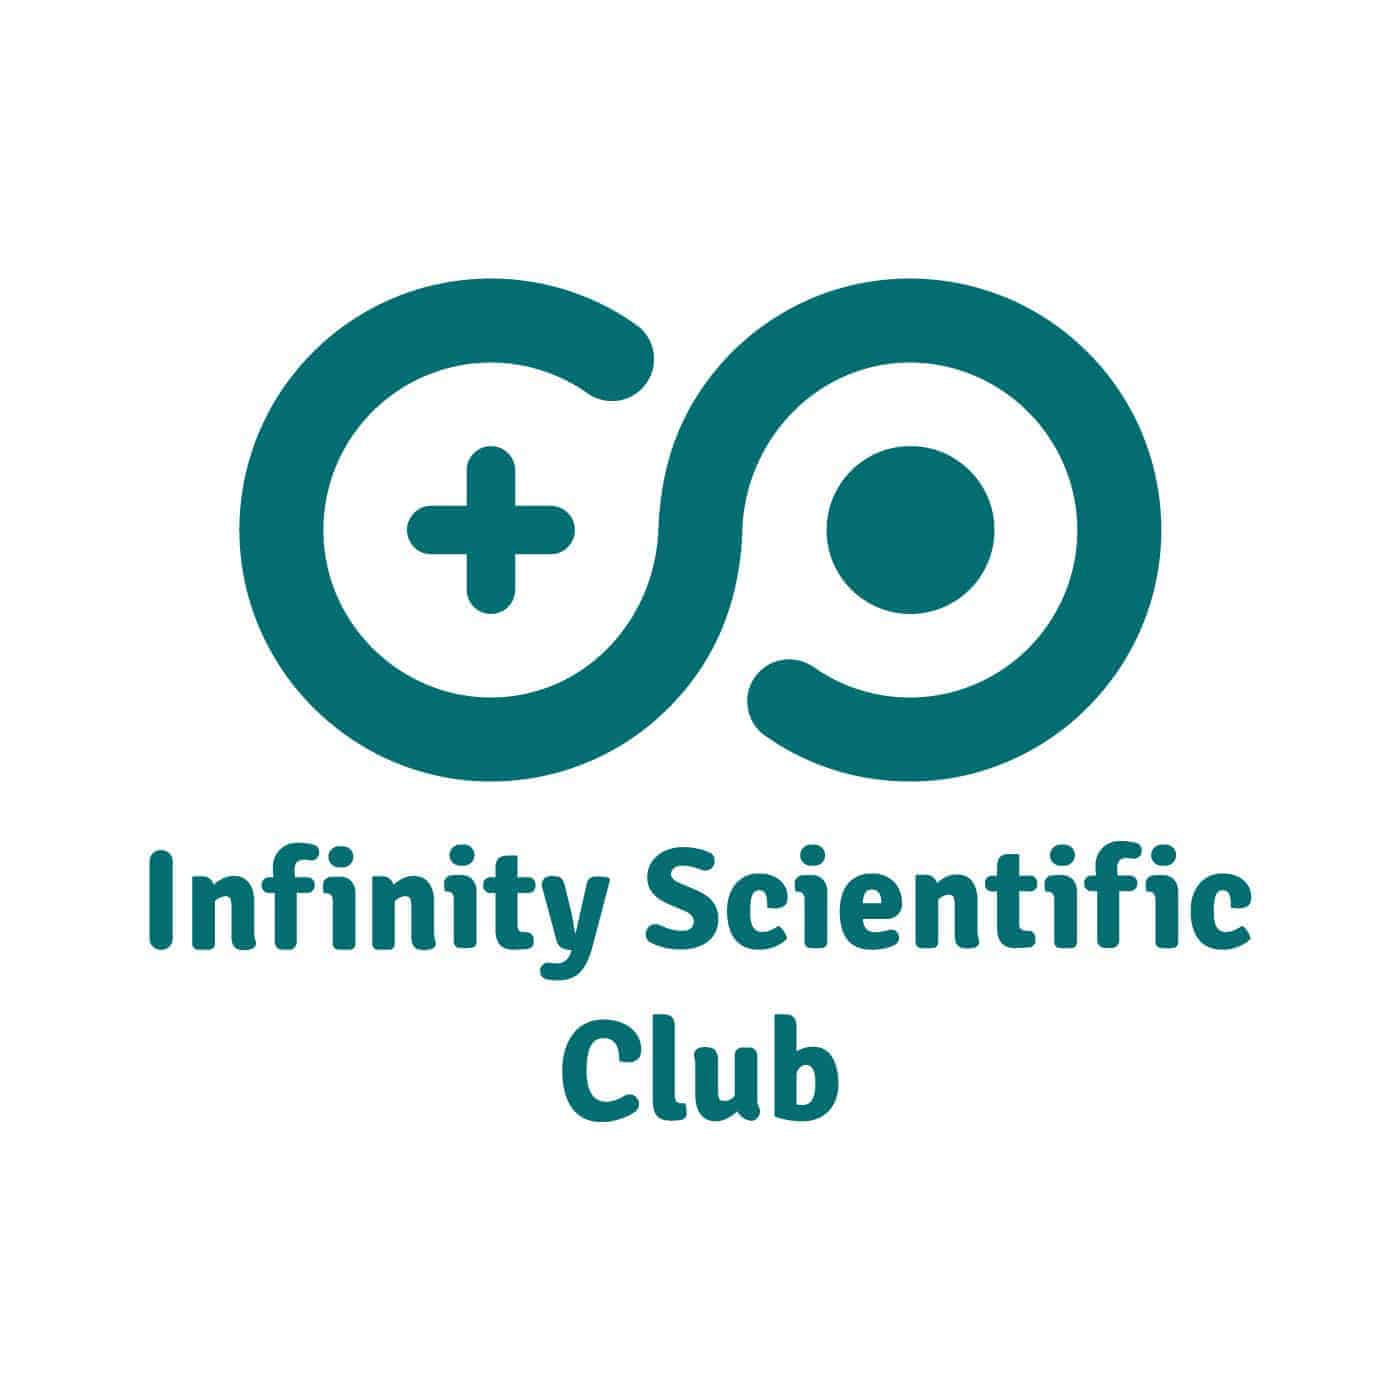 Infinity Scientific Club